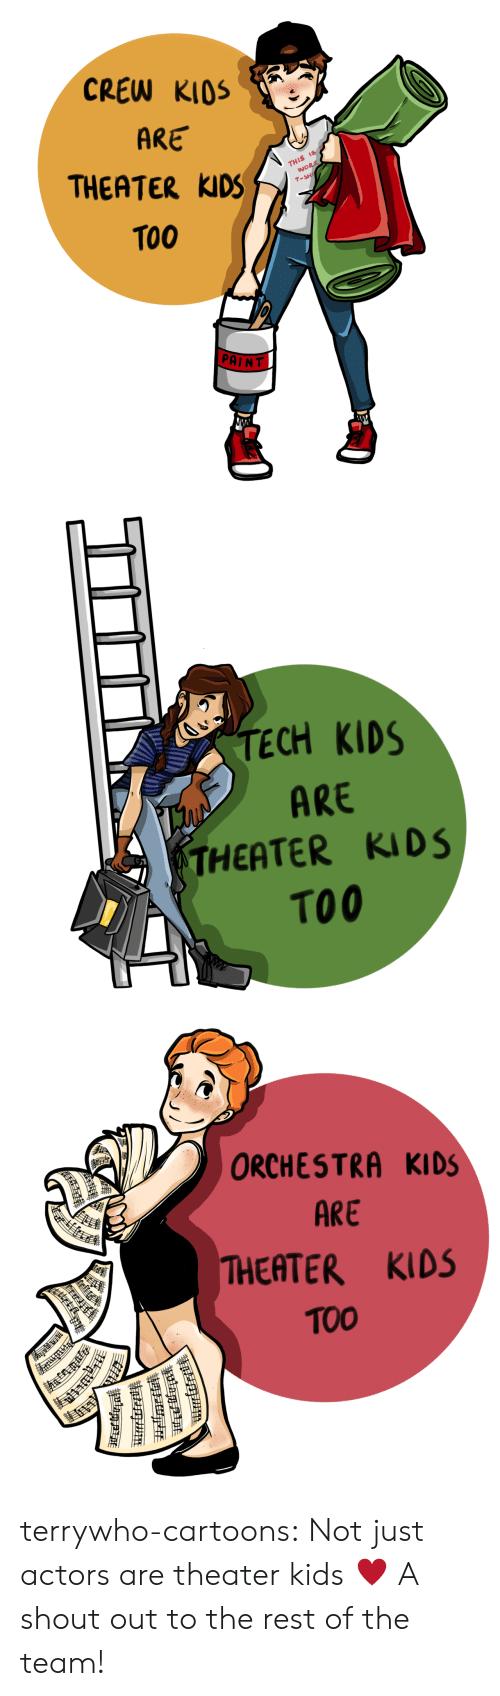 Target, Tumblr, and Blog: CREW KIOS  ARE  THEATER KIDS  TO0  wo  PAINT   TECH KIDS  ARE  THEATER KIDS  TO0   ORCHESTRA KIDS  ARE  THEATER KIDS  TOO terrywho-cartoons: Not just actors are theater kids ♥️ A shout out to the rest of the team!